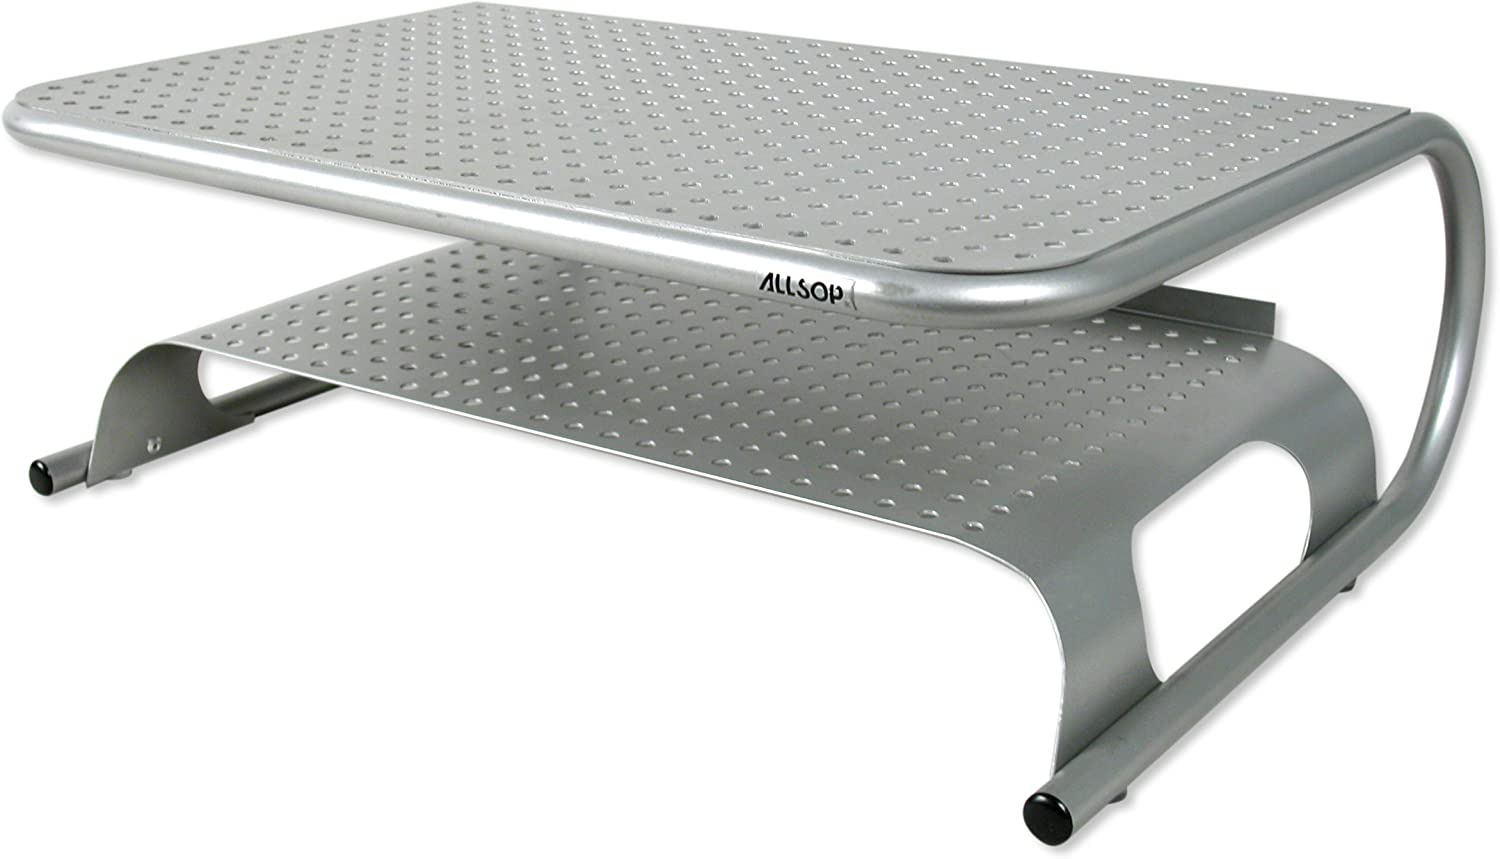 Allsop Metal Art Printer Stand with Shelf for Printers, Monitors, Laptops, TV's (27873)